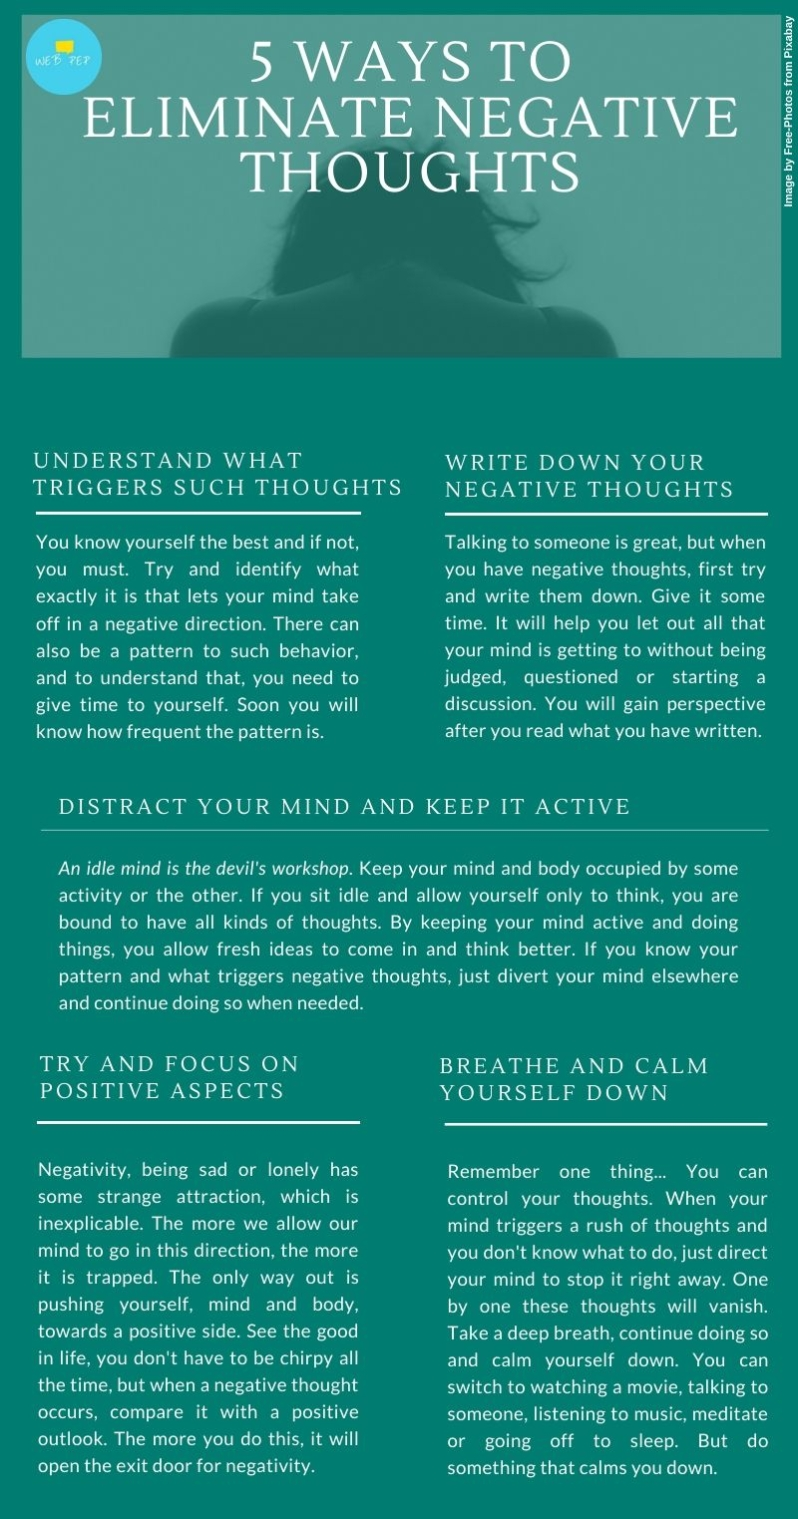 5 Ways To Eliminate Negative Thoughts